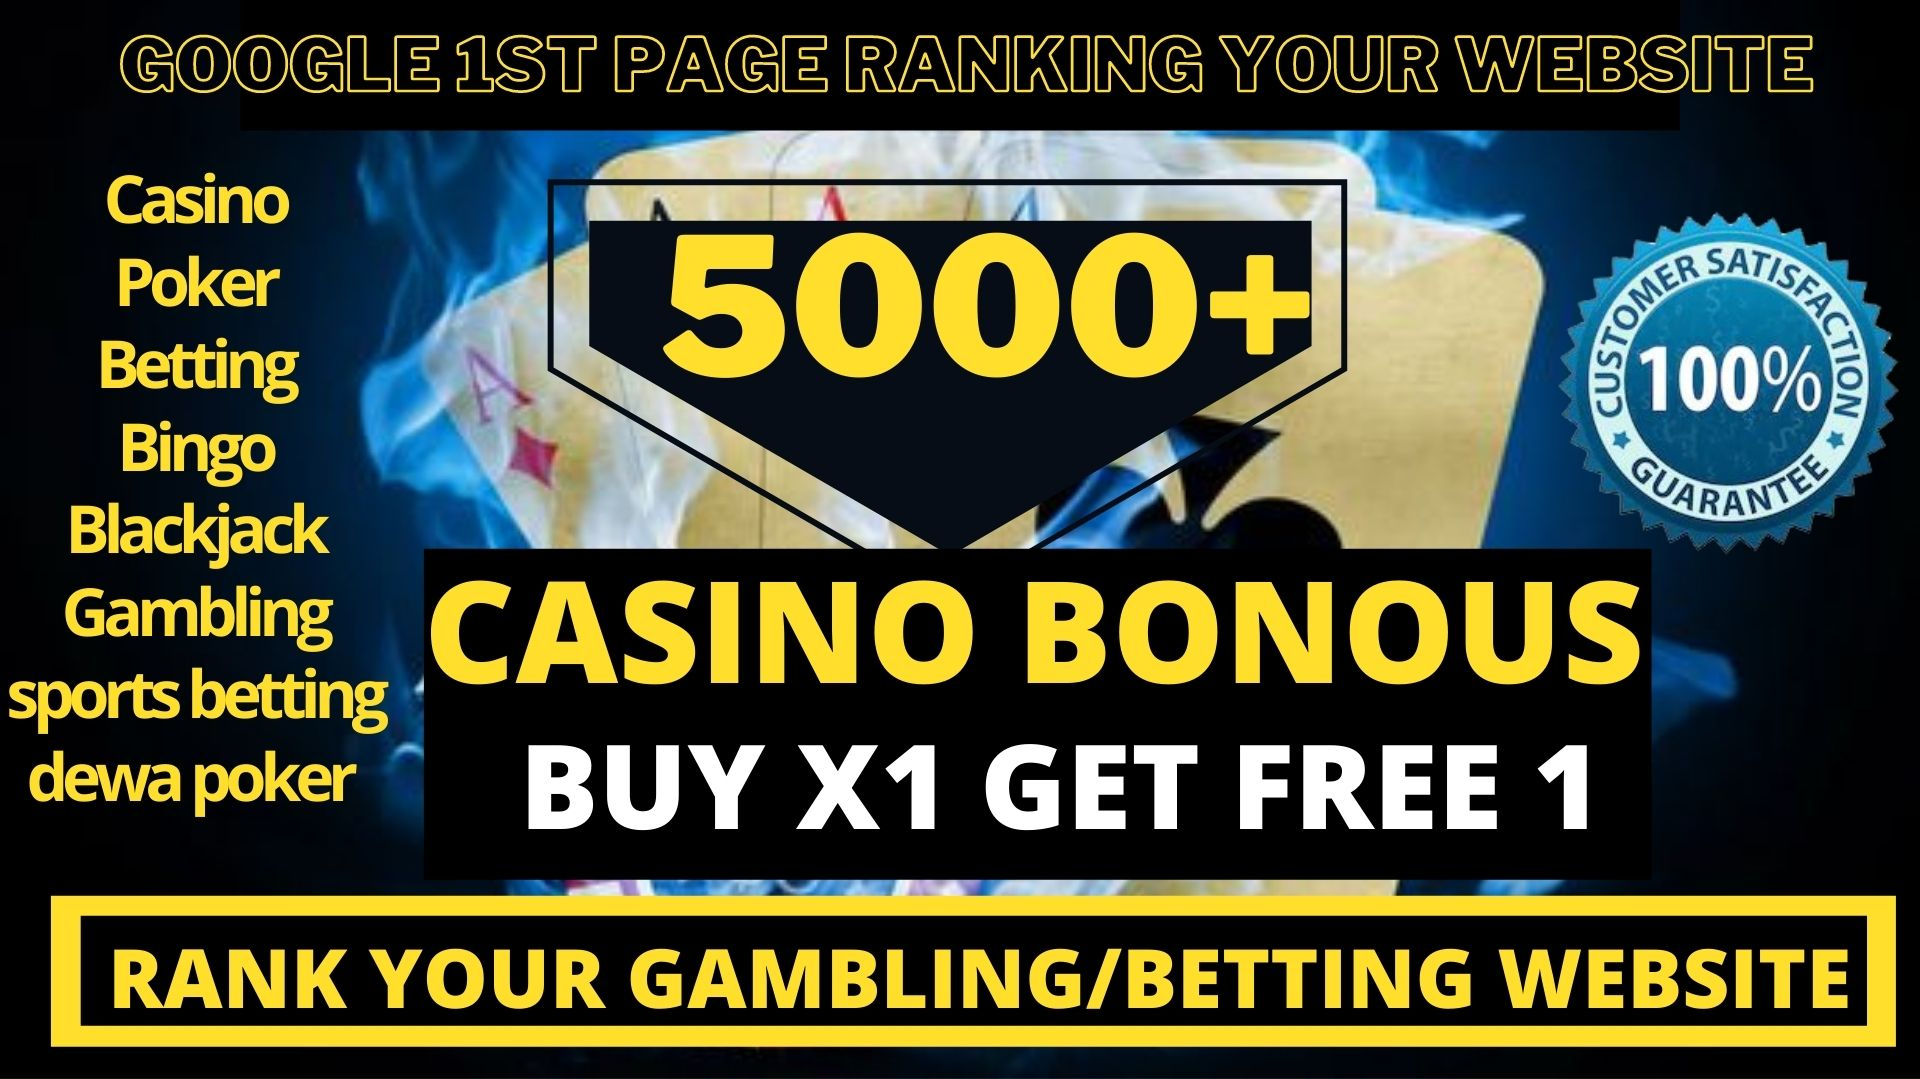 best 5000+Parmanent CASINO/POKER/Gambling/Sports Betting/Judi bola related online web2.0 unique site